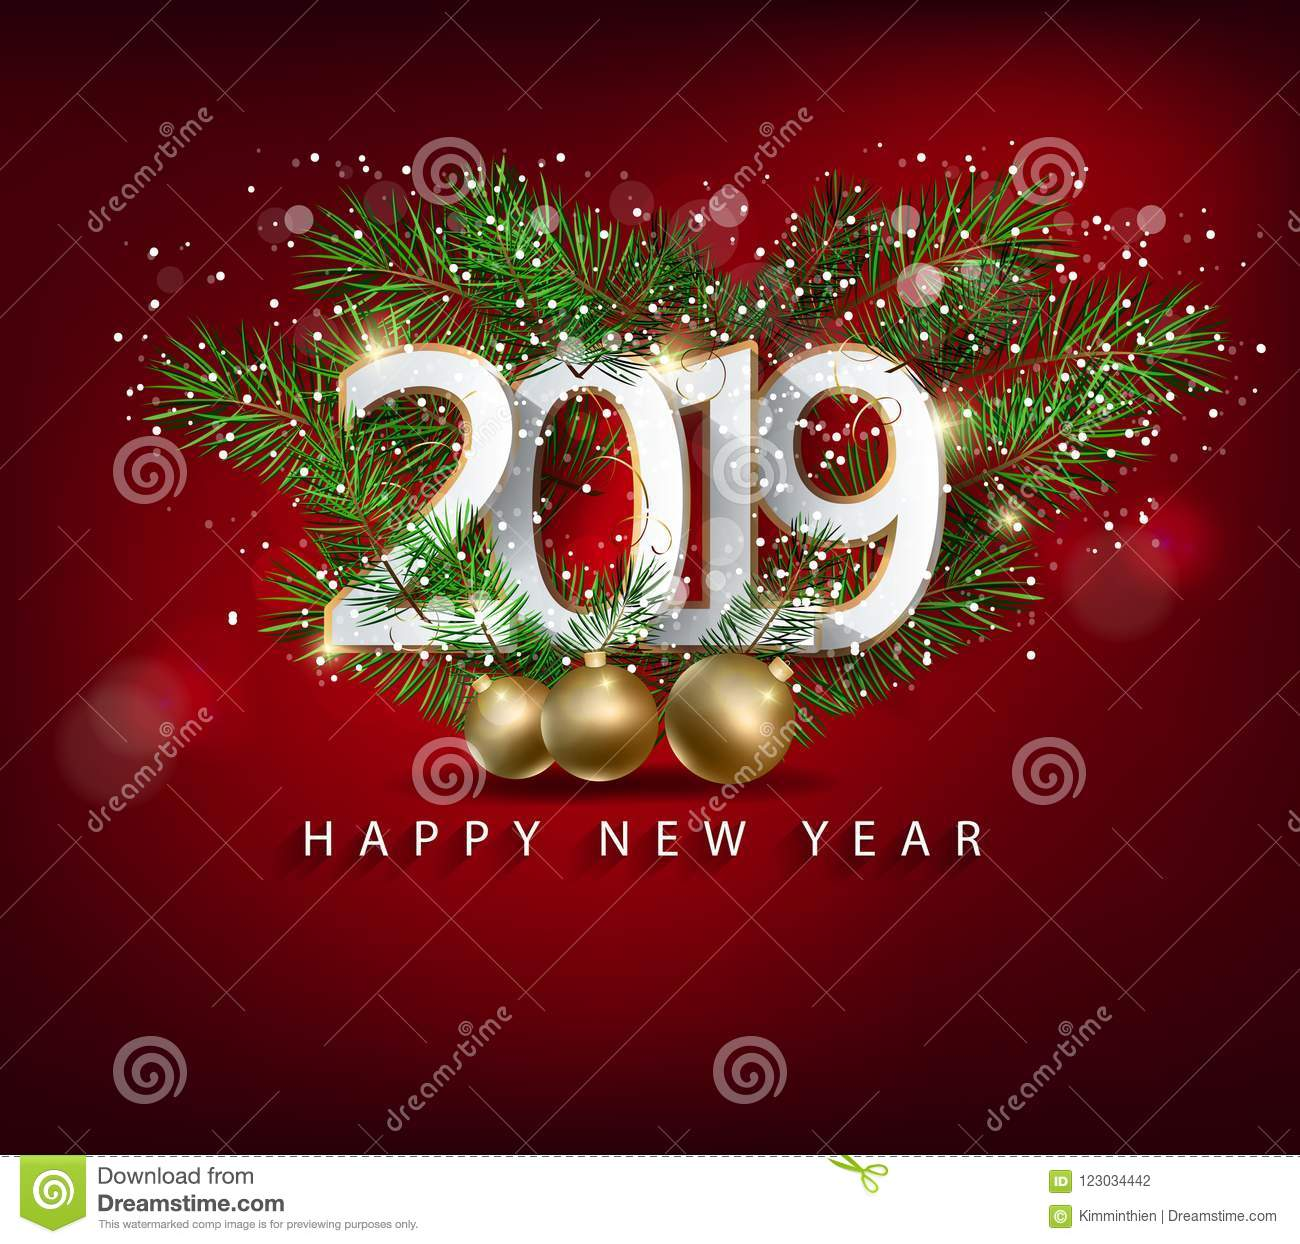 2019 Christmas.Happy New Year 2019 And Merry Christmas Stock Vector